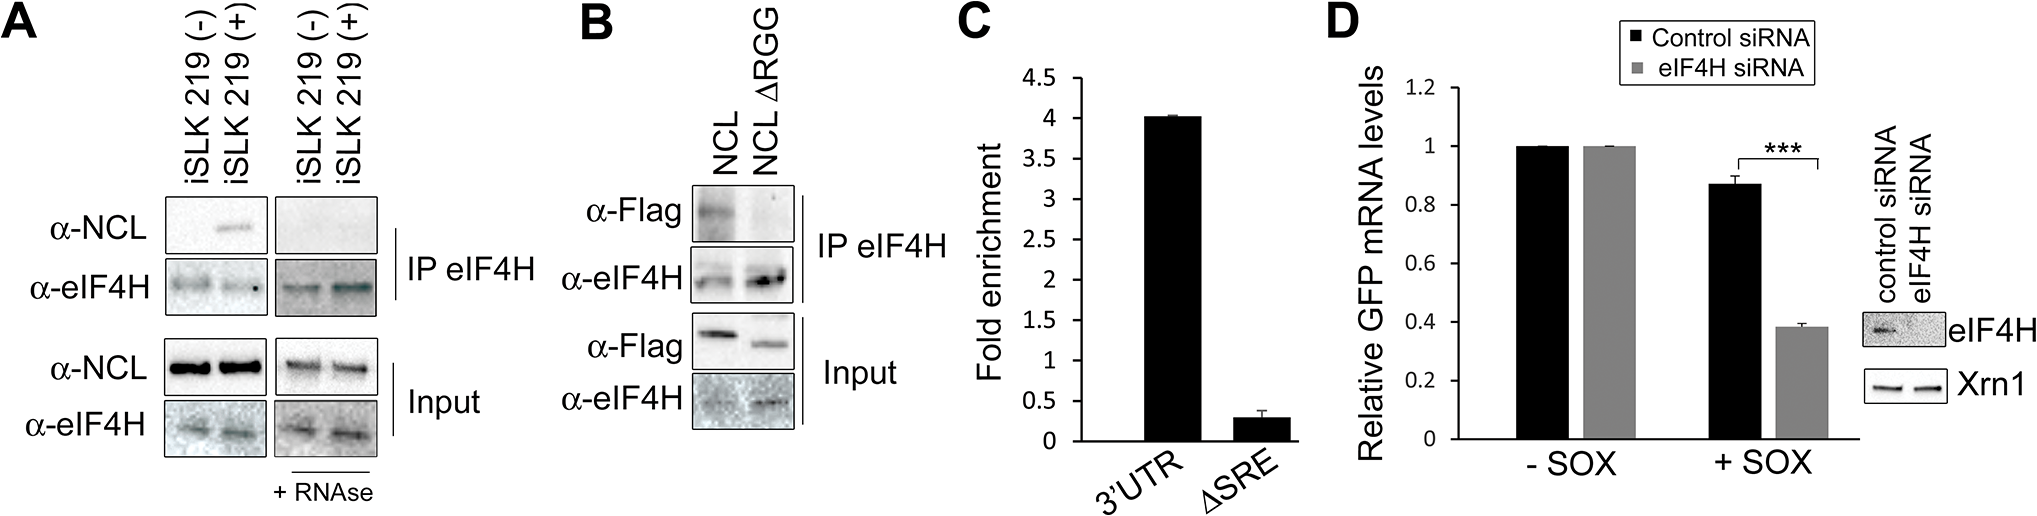 IL-6 escape is potentiated by an NCL-eIF4H interaction.